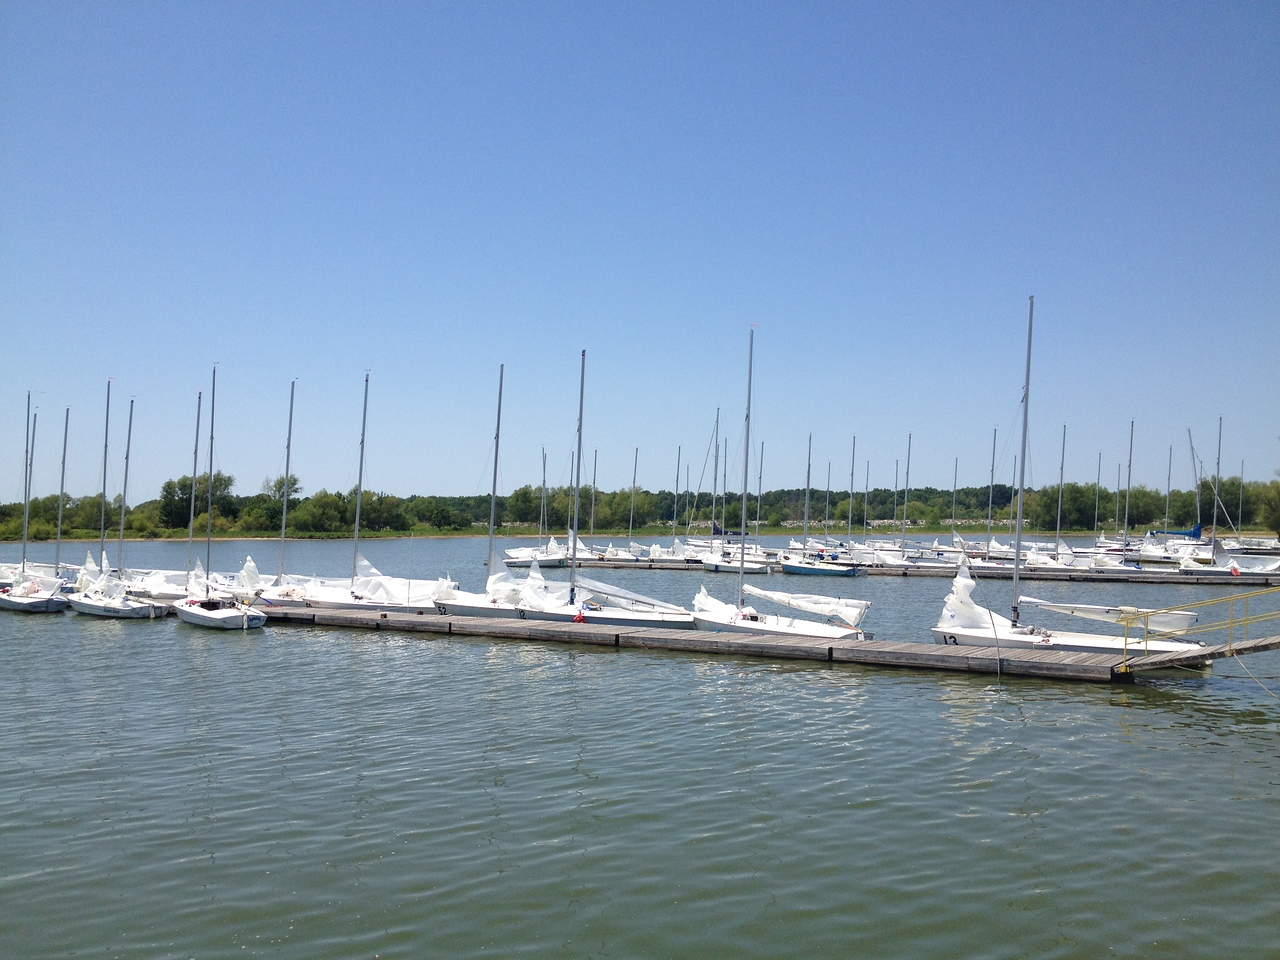 Boats docked on Thursday waiting for the wind to come back up.